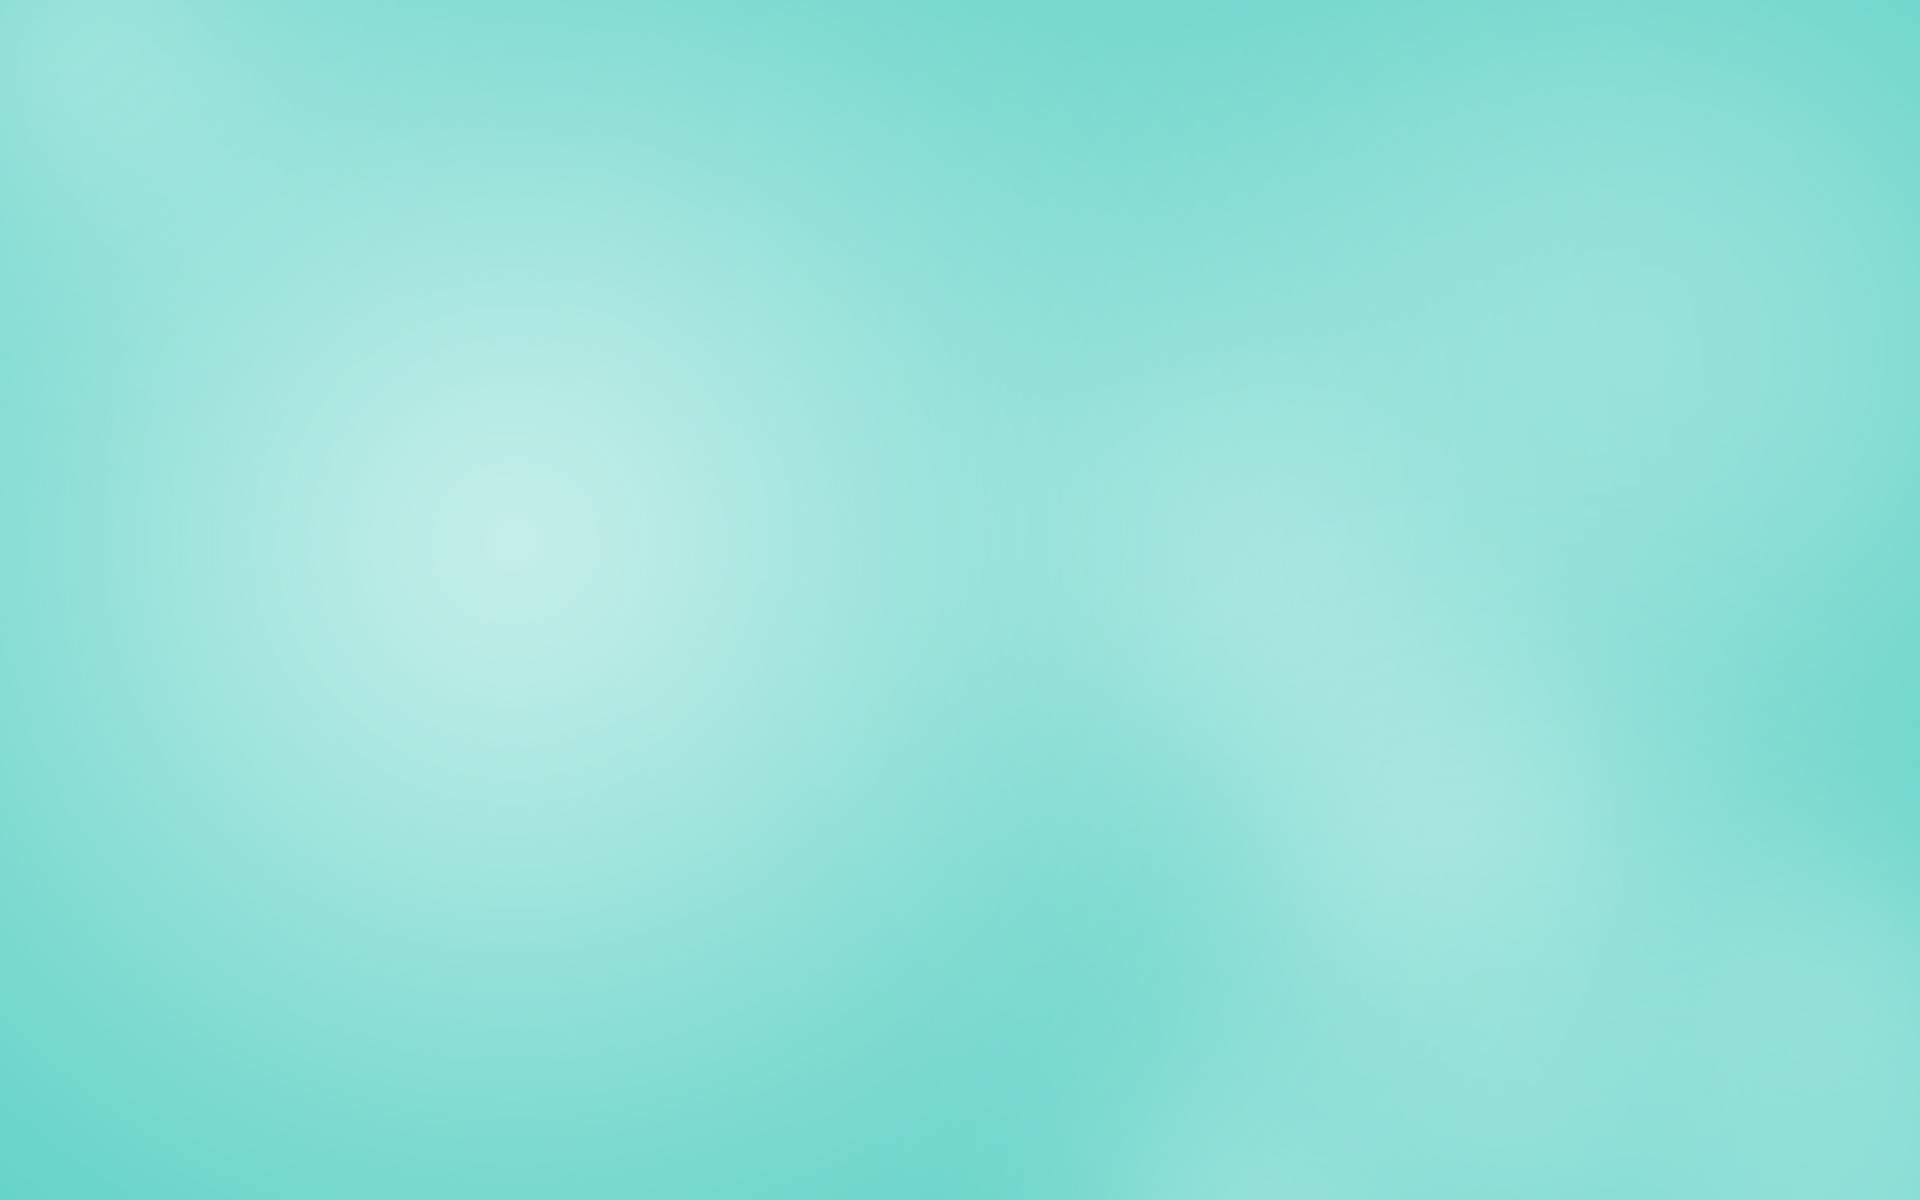 Mint wallpaper – (#14987) – High Quality and Resolution Wallpapers on .